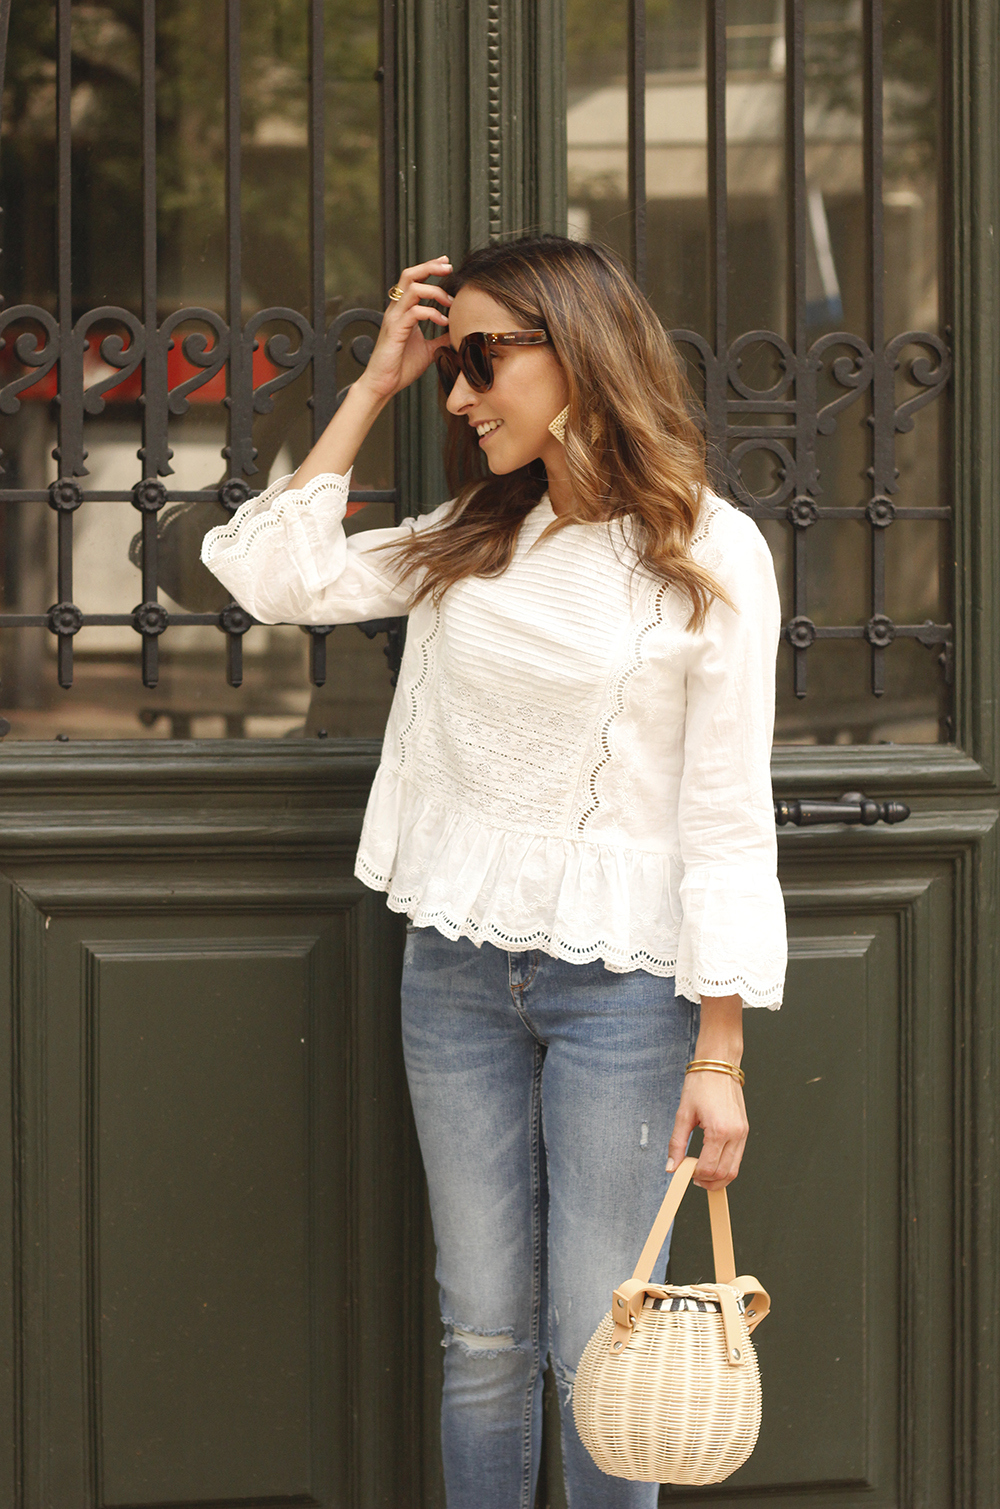 polka dot kitten heels white blouse ripped jeans outfit girl style fashion07